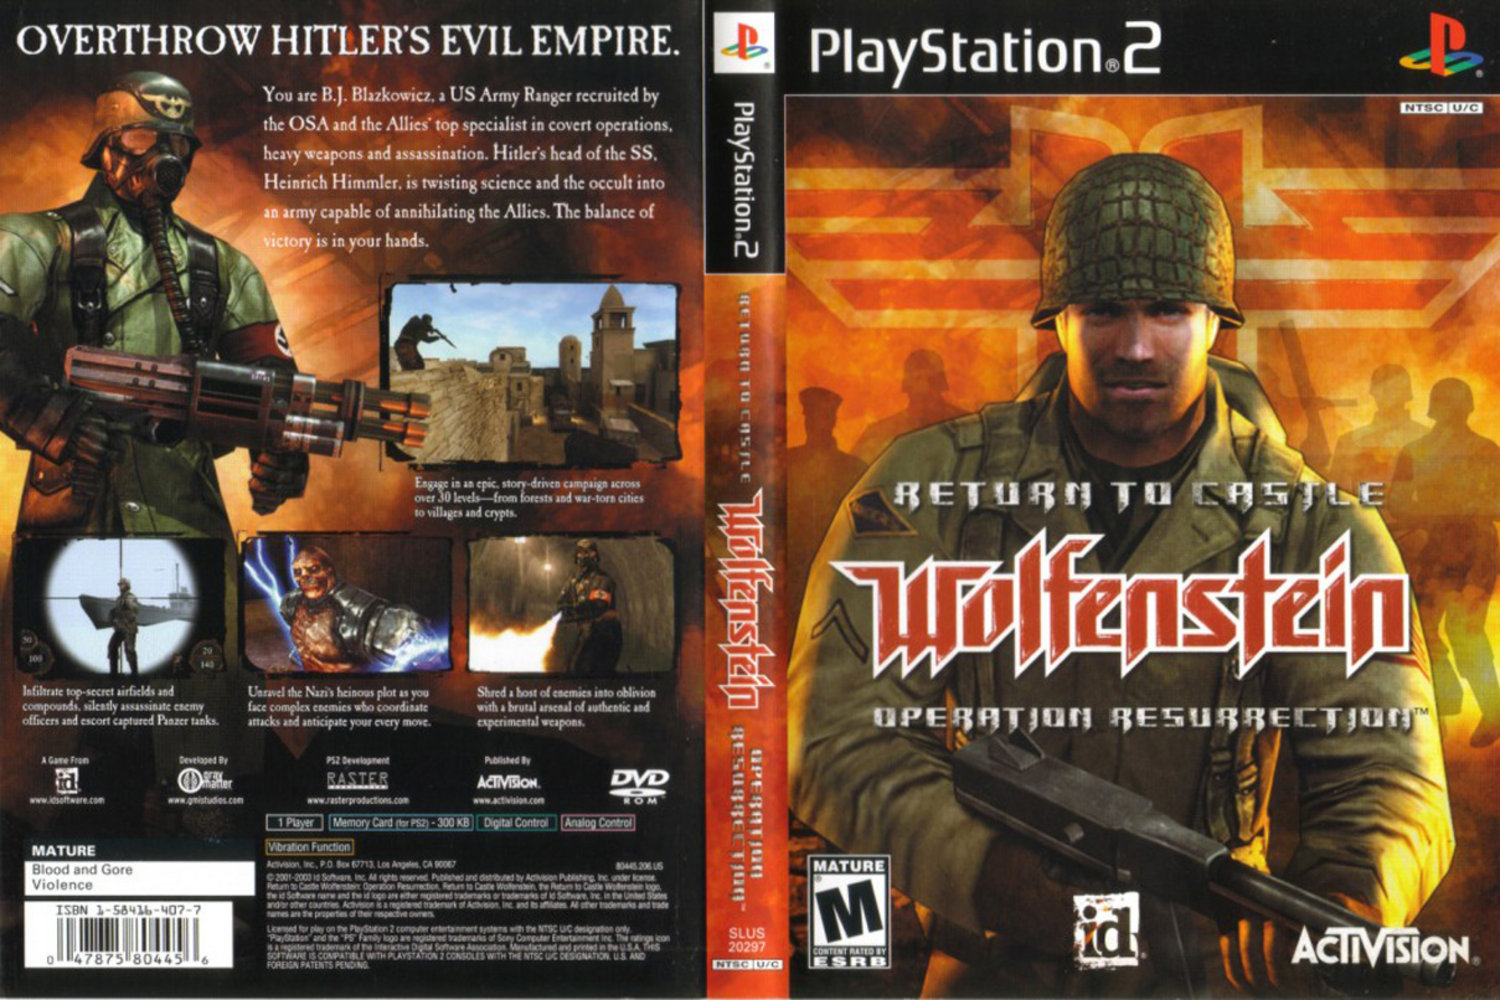 Return To Castle Wolfenstein iso